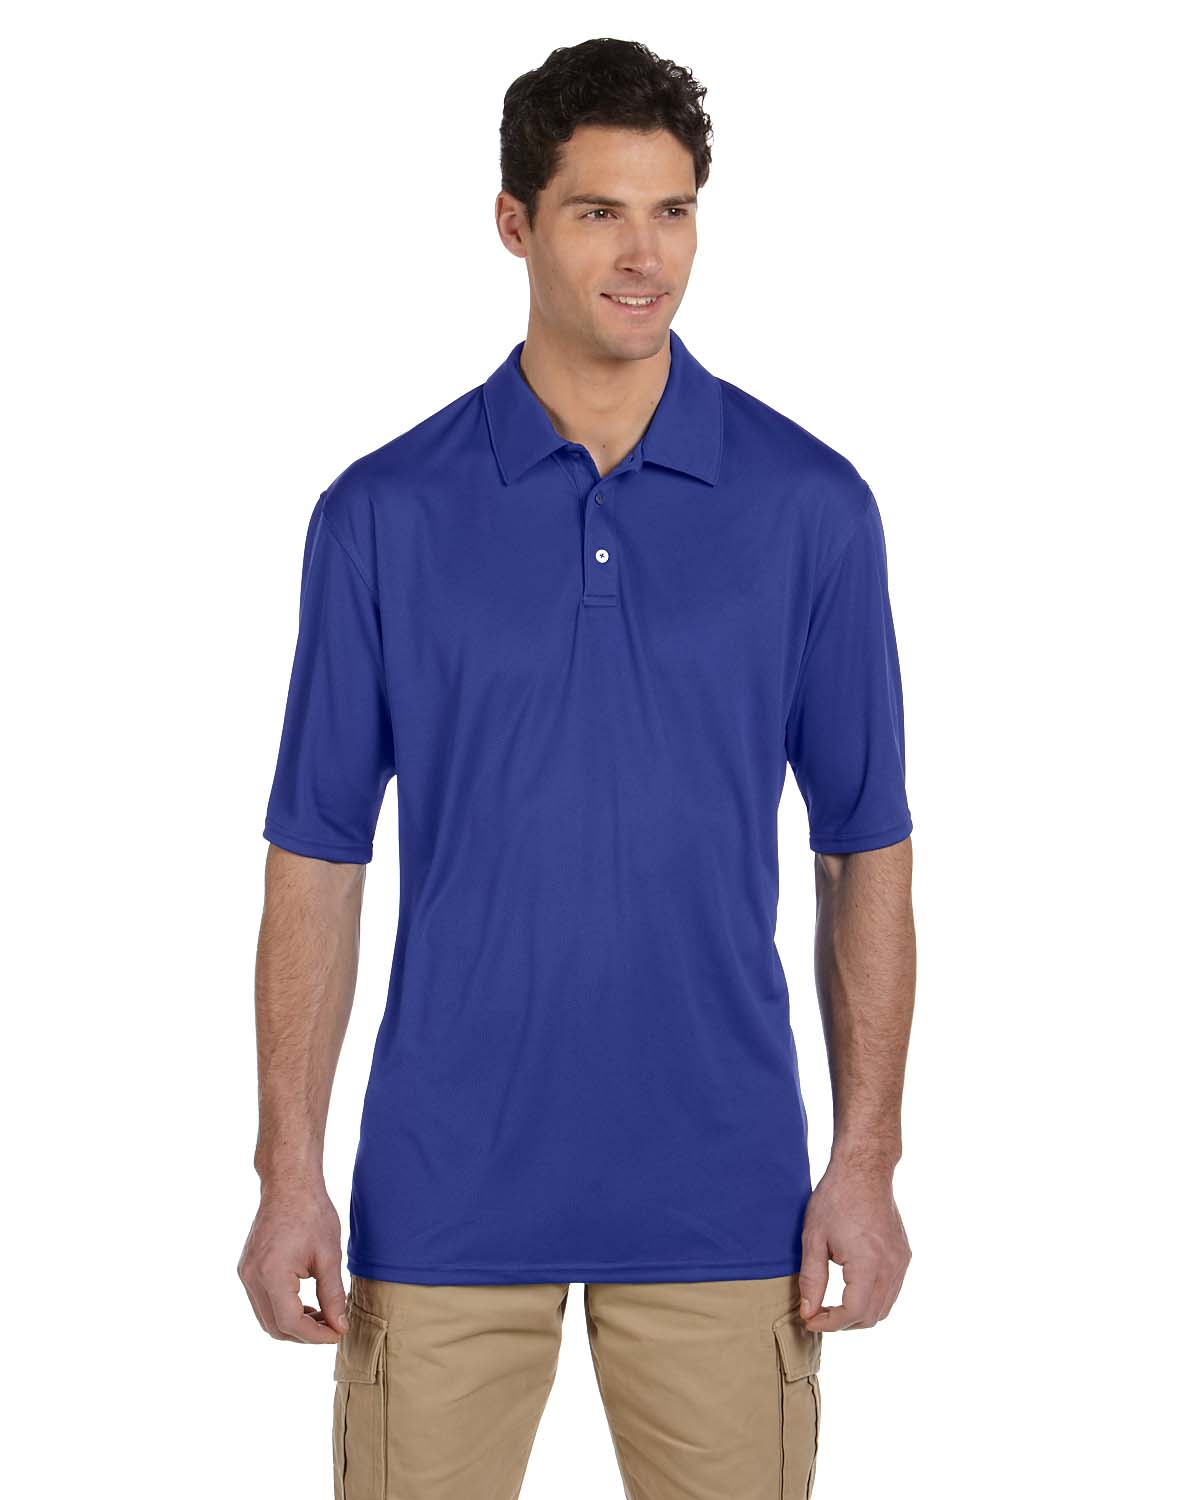 Jerzees Mens 4.1 Oz., 100% Polyester Micro Pointelle Mesh SPORT